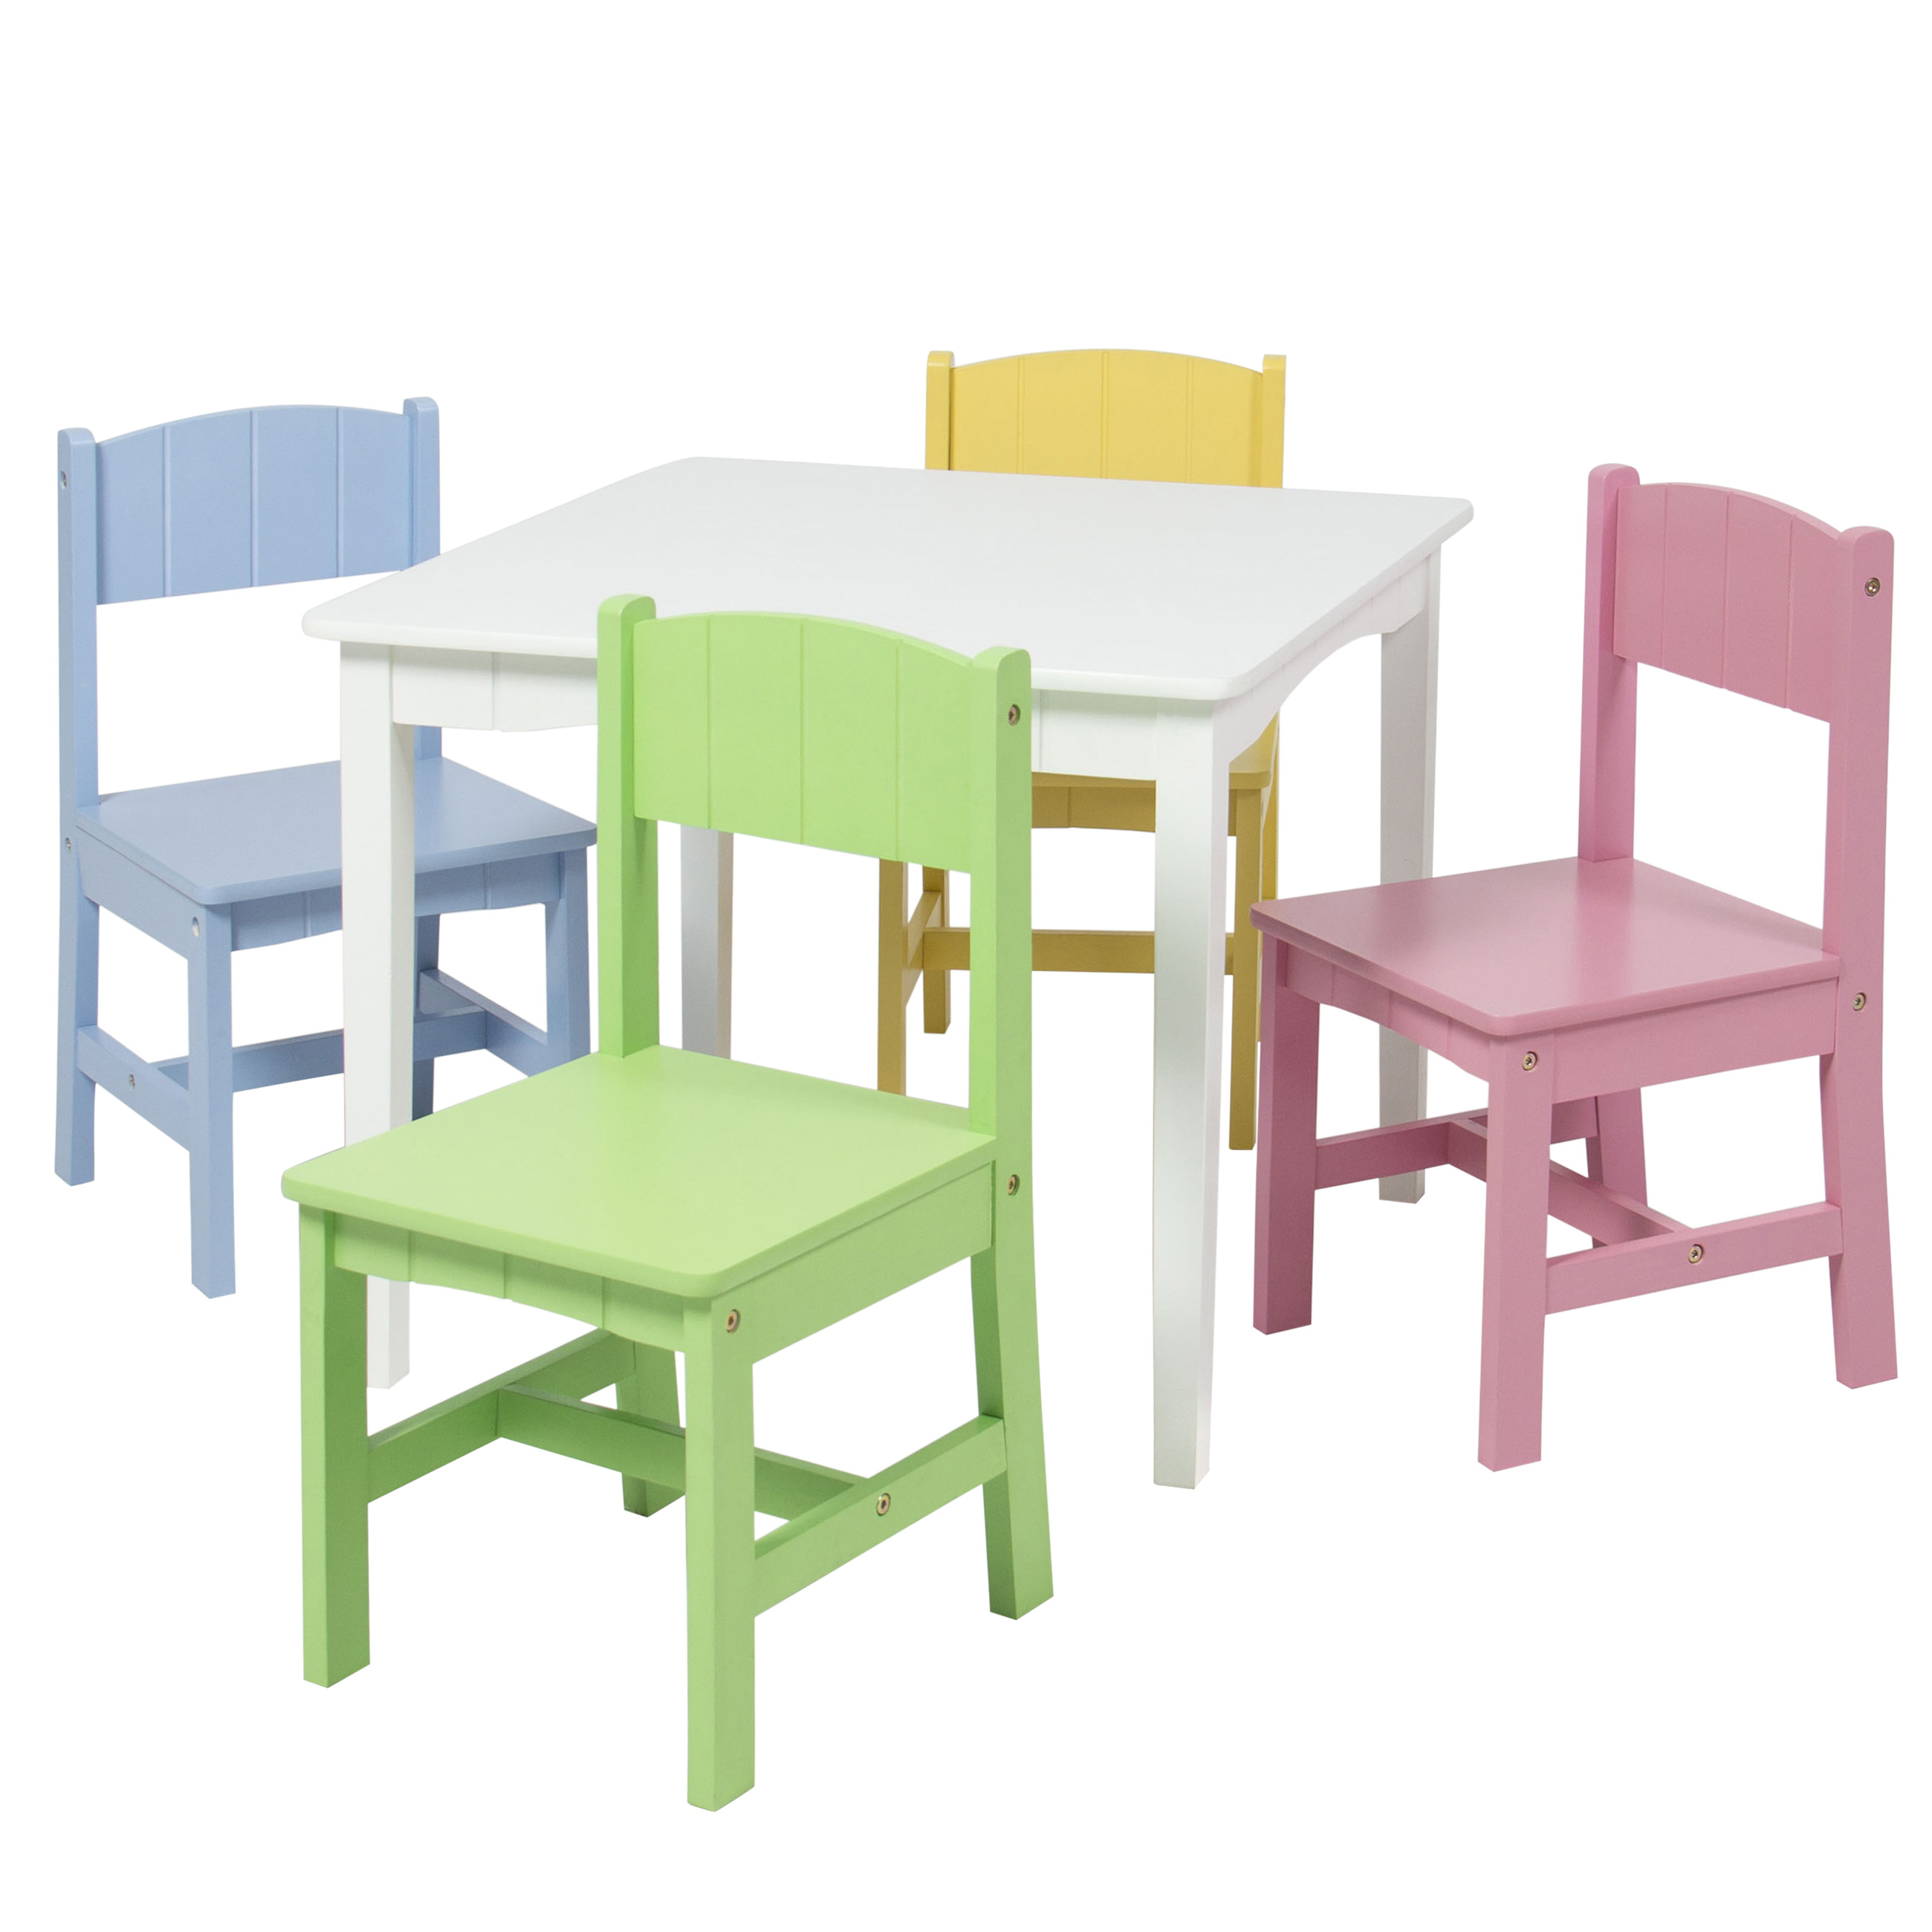 Wooden kids table and 4 chairs set furniture play area for Furniture 4 schools